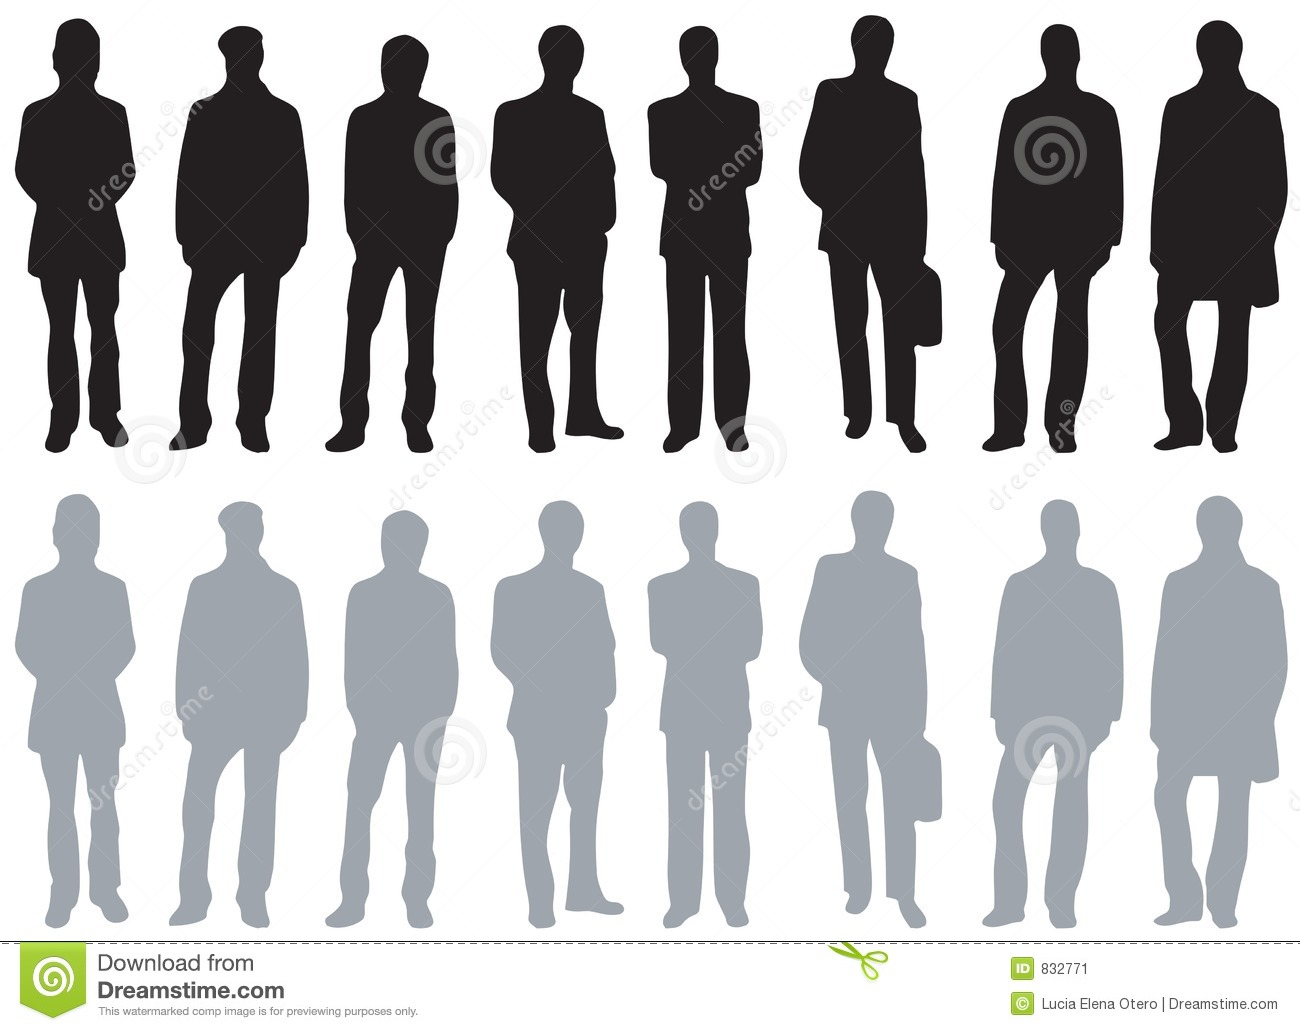 Silhouettes - Different kinds of men